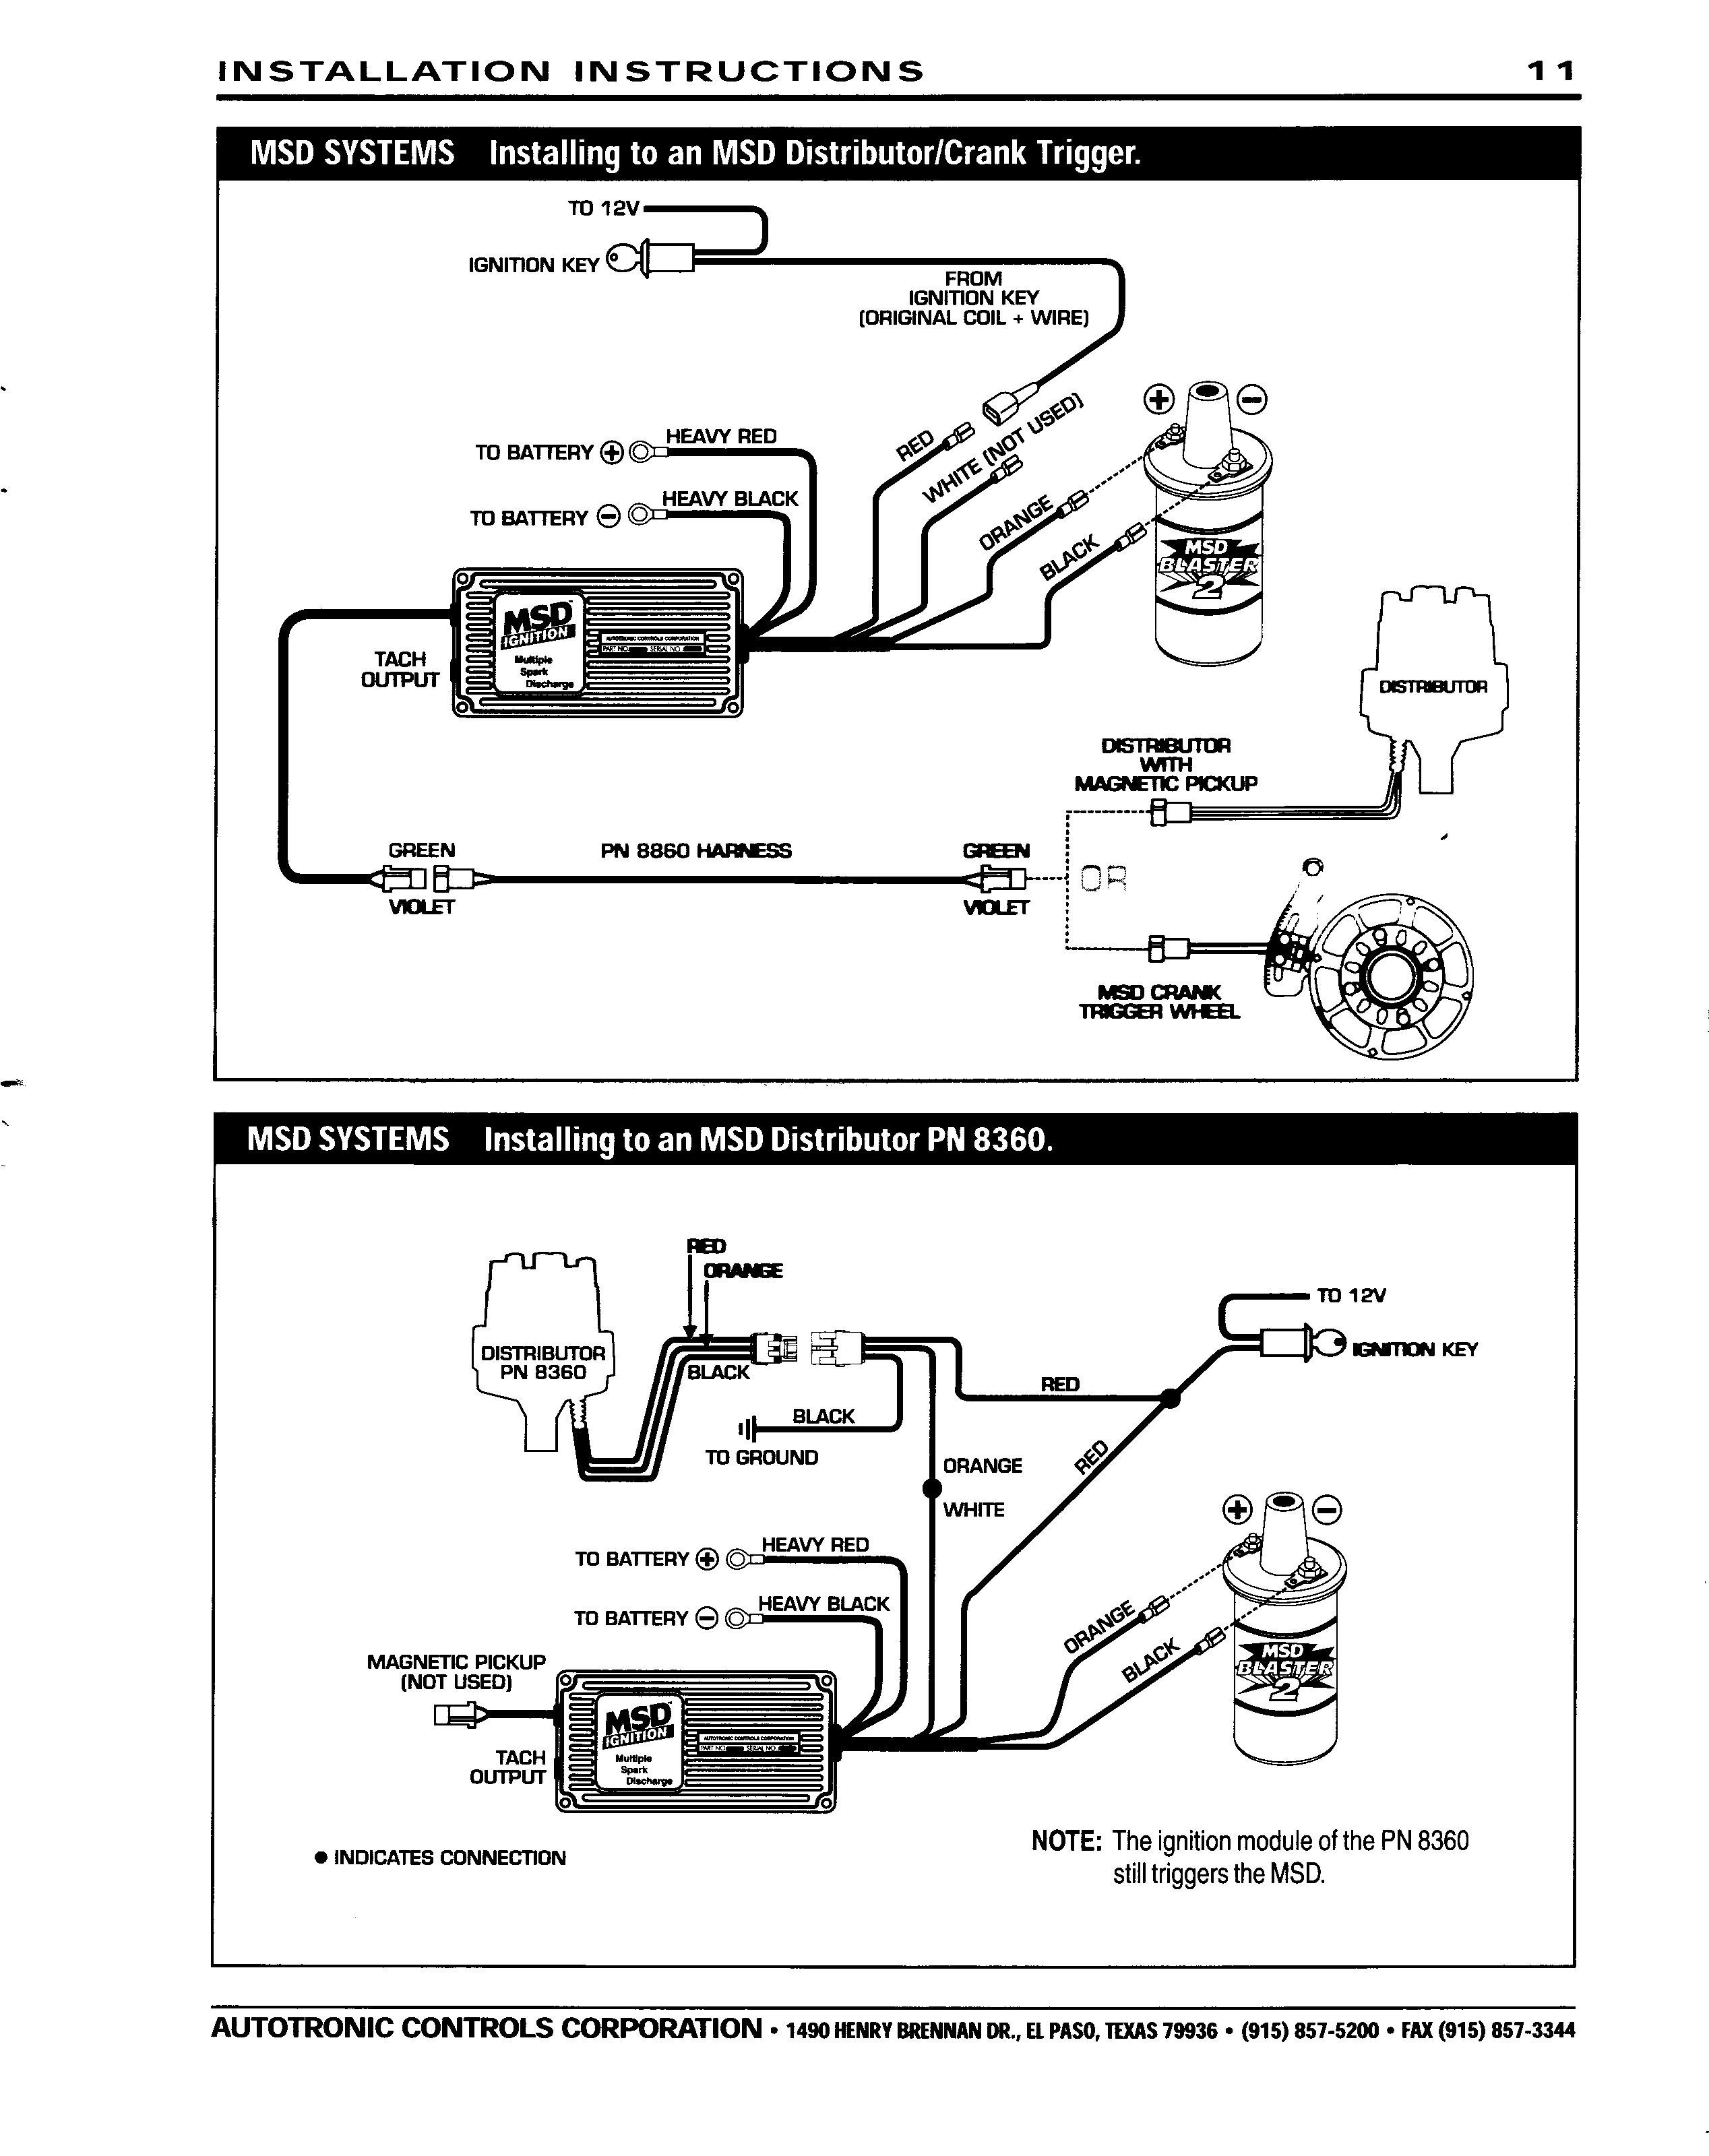 Diagram 6425 Msd Ignition Wiring Diagram